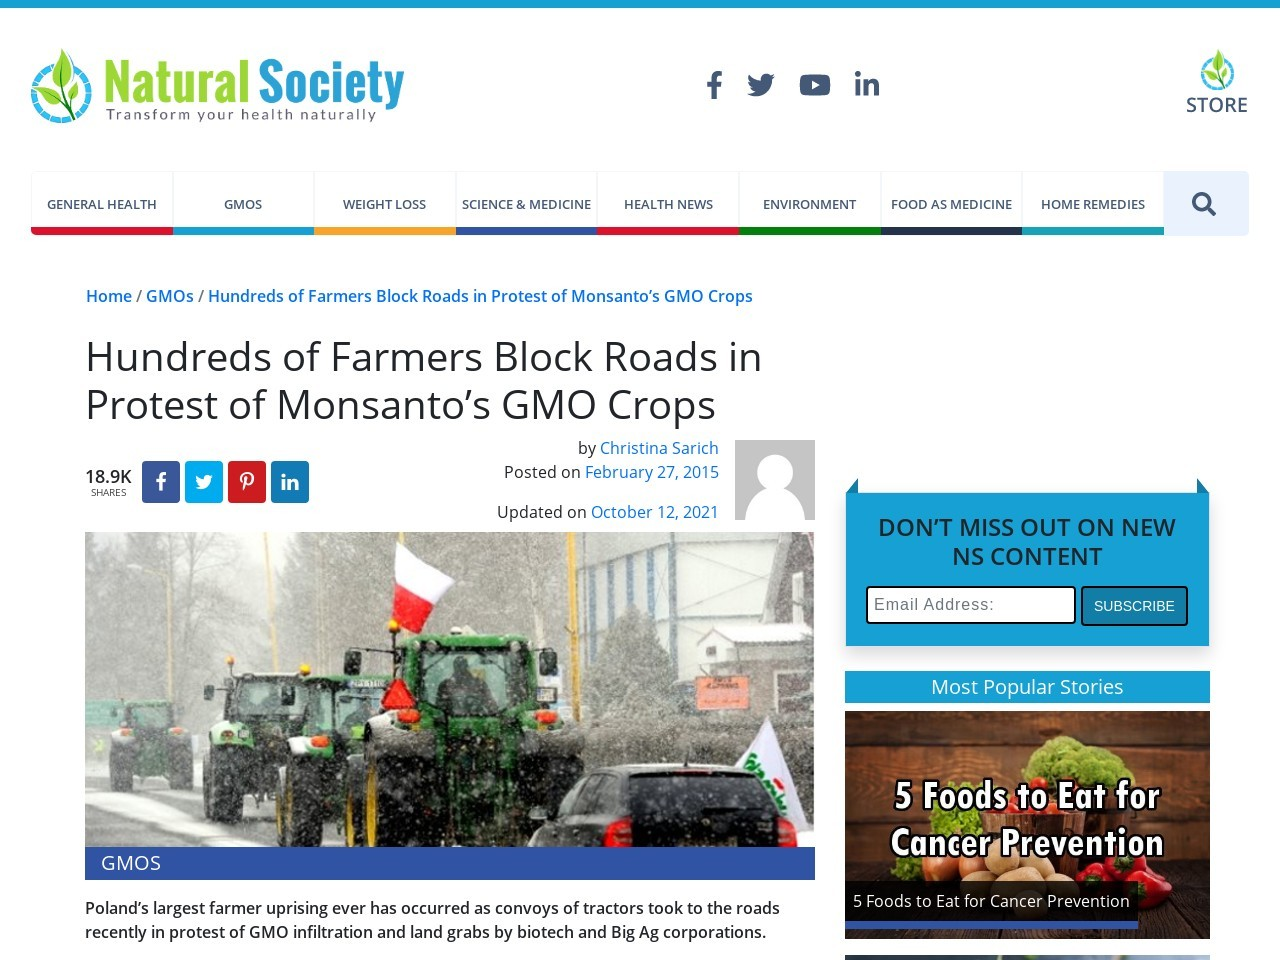 Hundreds of Farmers Block Roads in Protest of Monsanto's GMO Crops